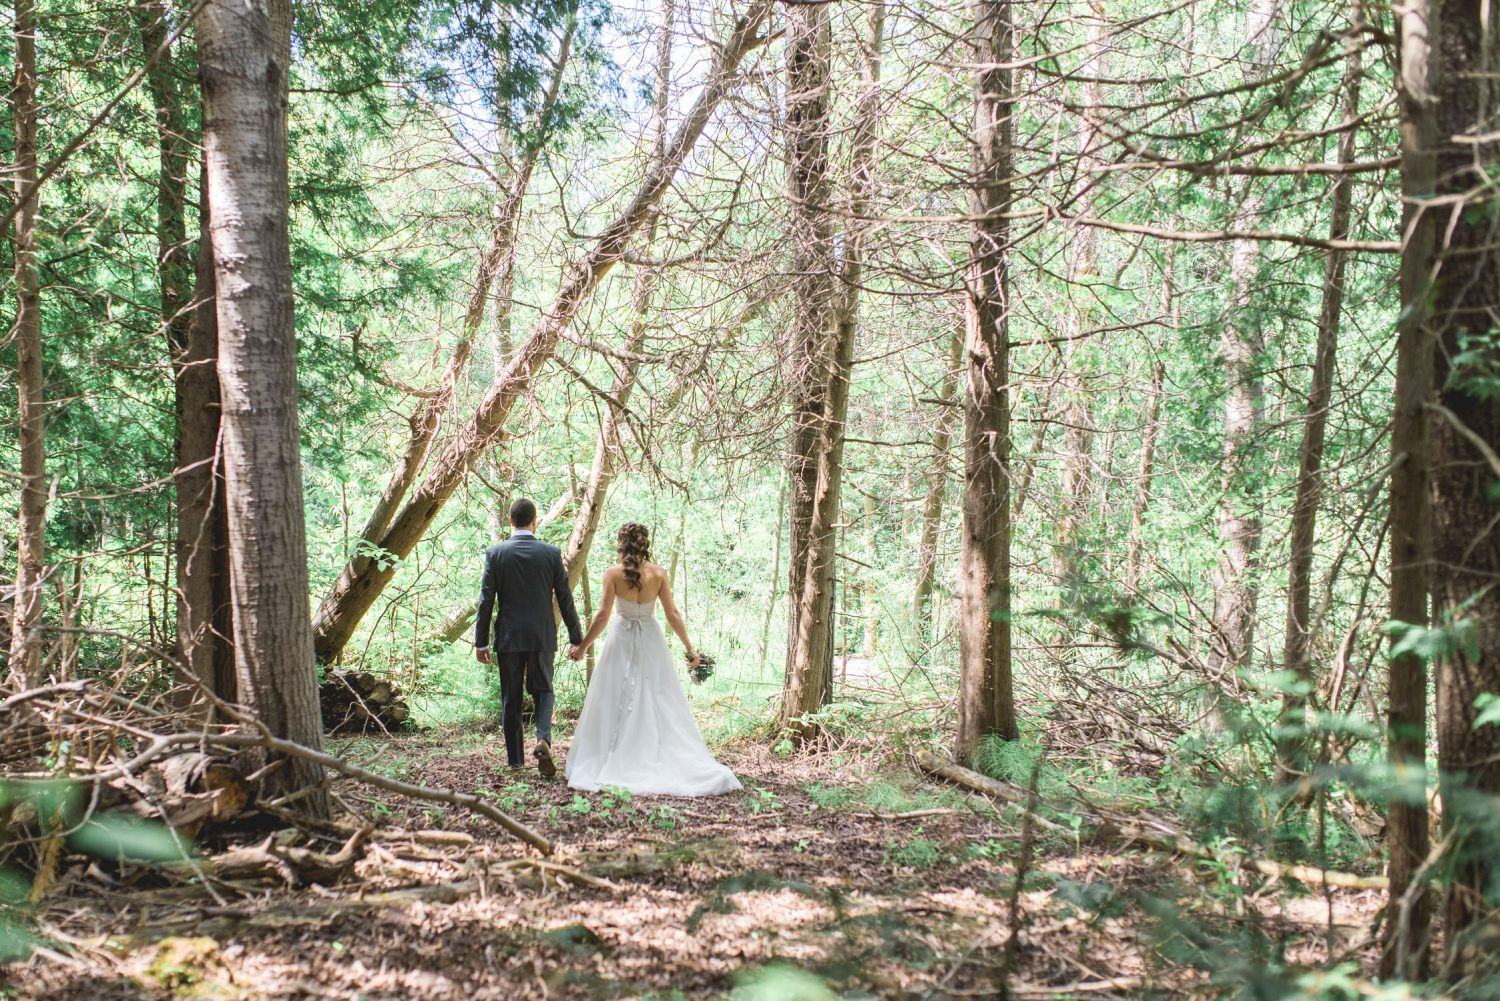 Bride and groom walk into the woods